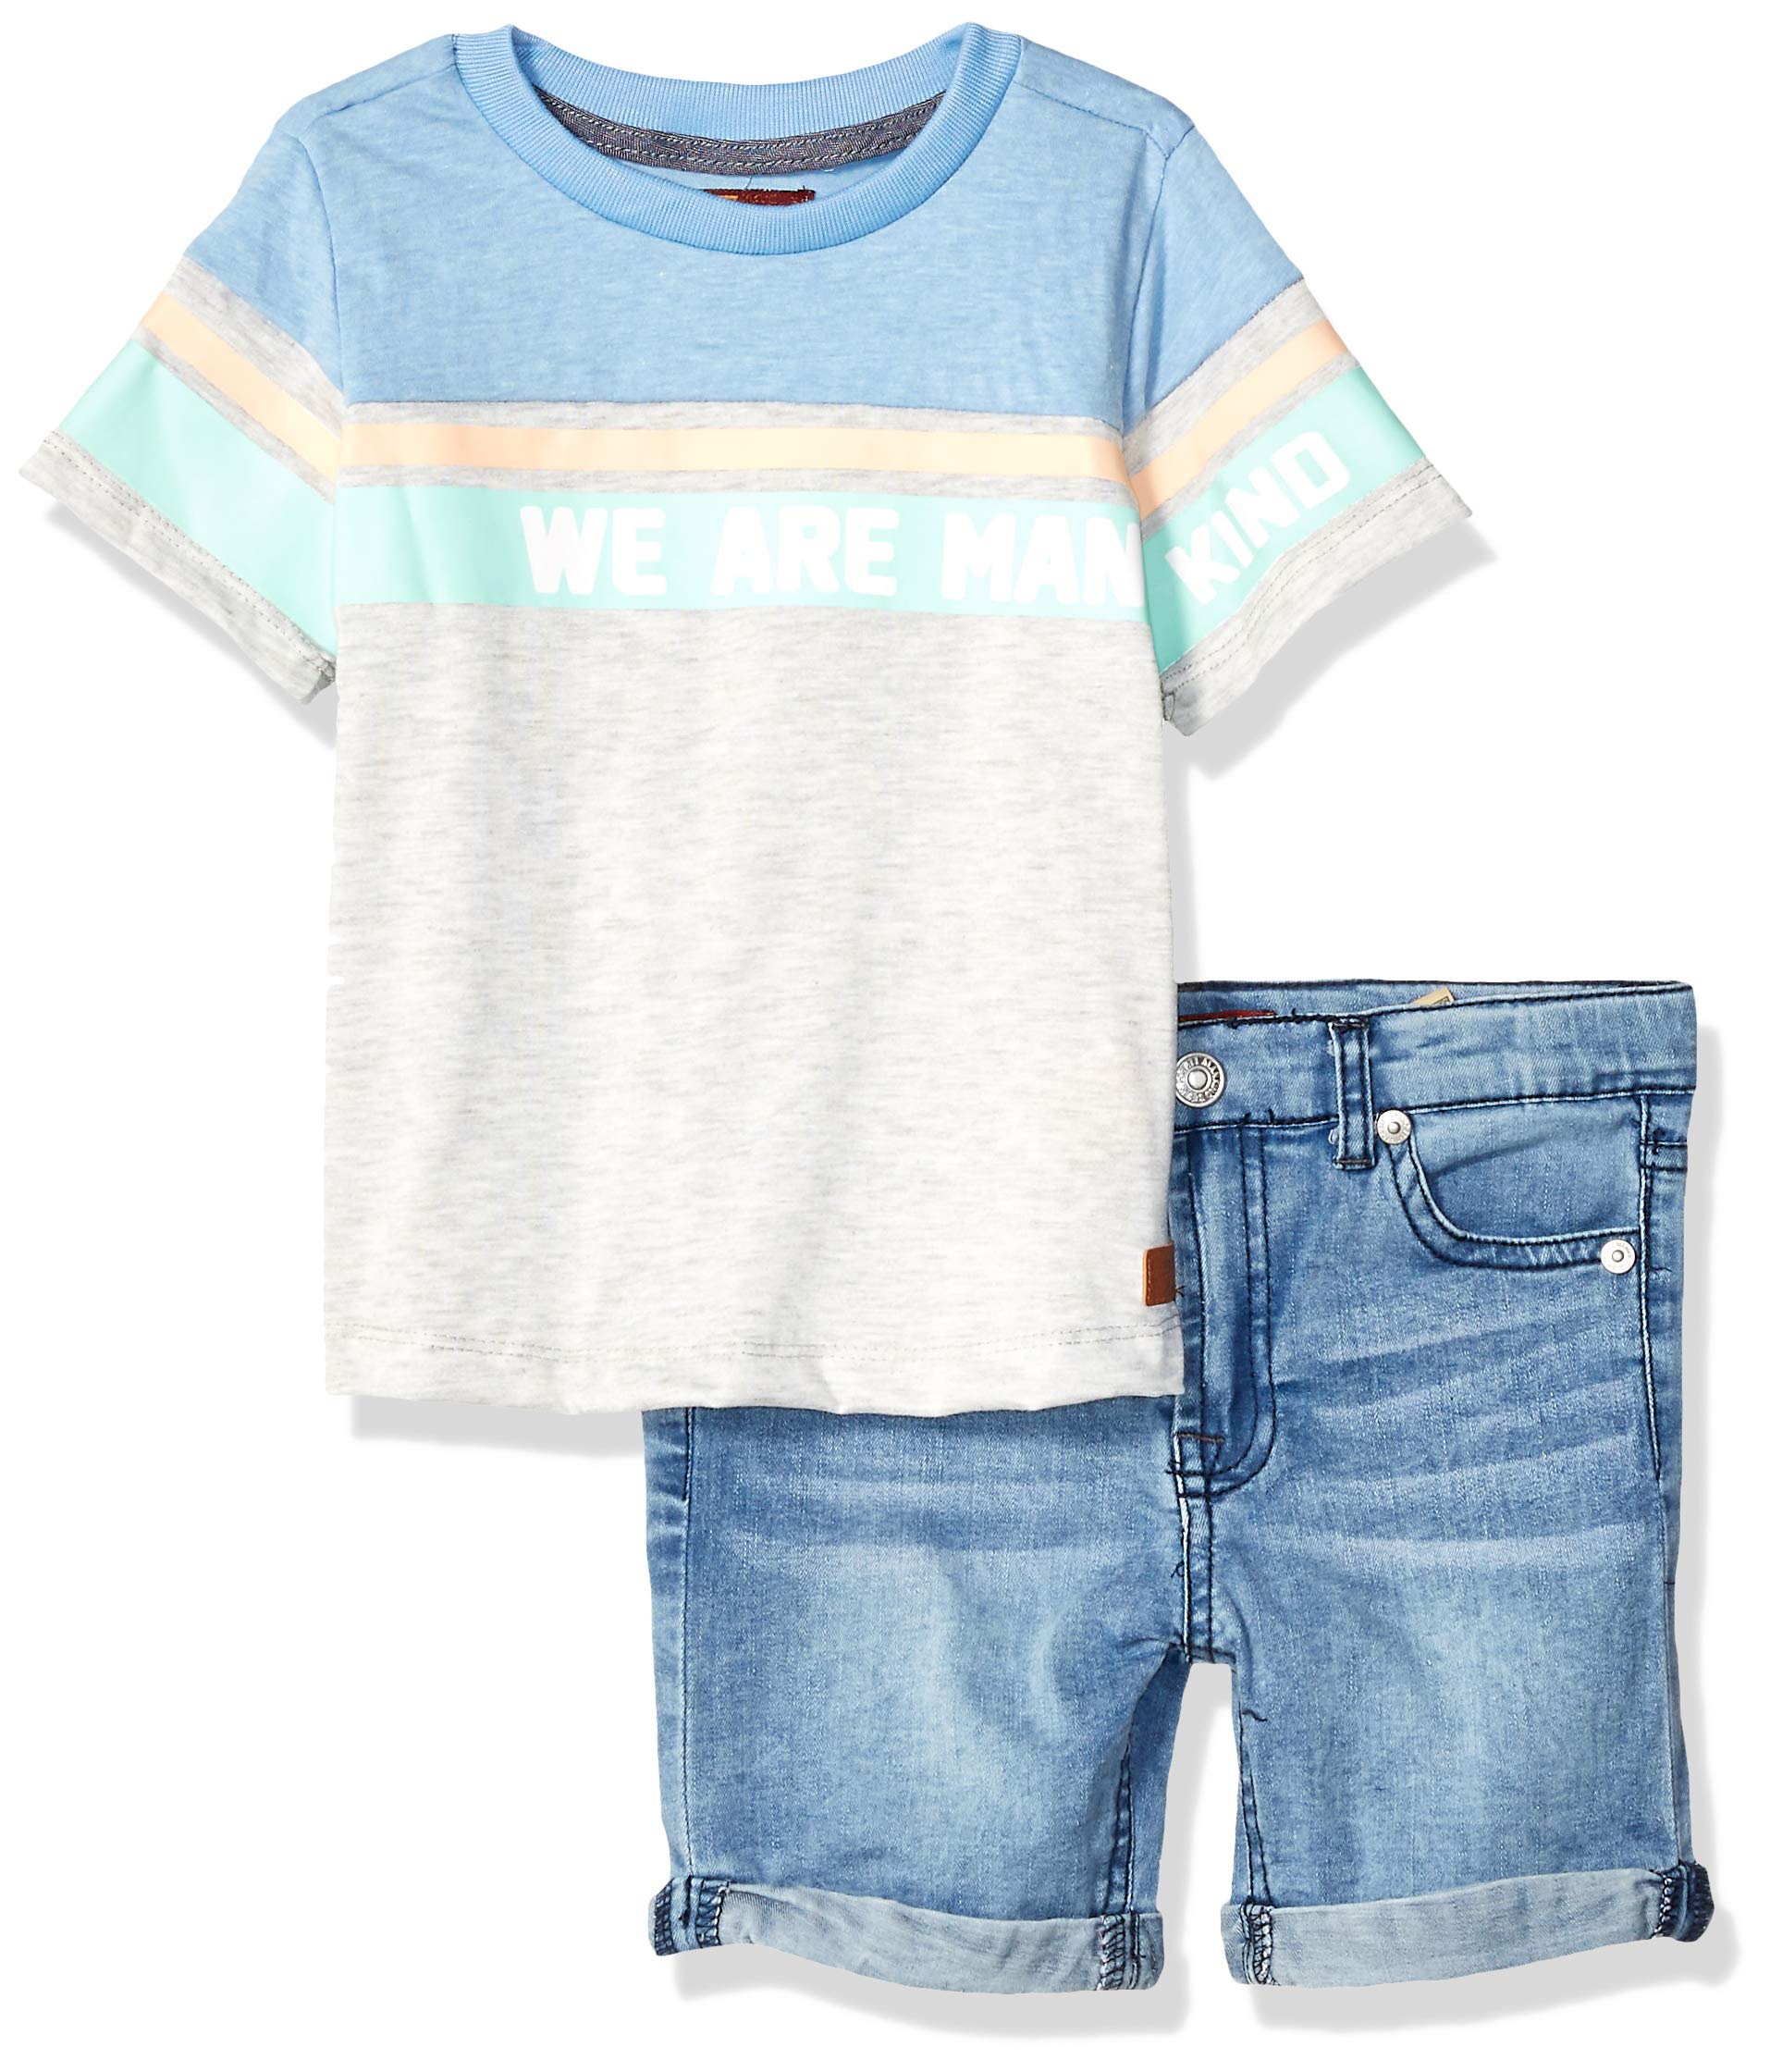 7 For All Mankind Kids Boys' Toddler Classic Printed T-Shirt and Denim Short Set, Heather Grey/Light Wash, 2T